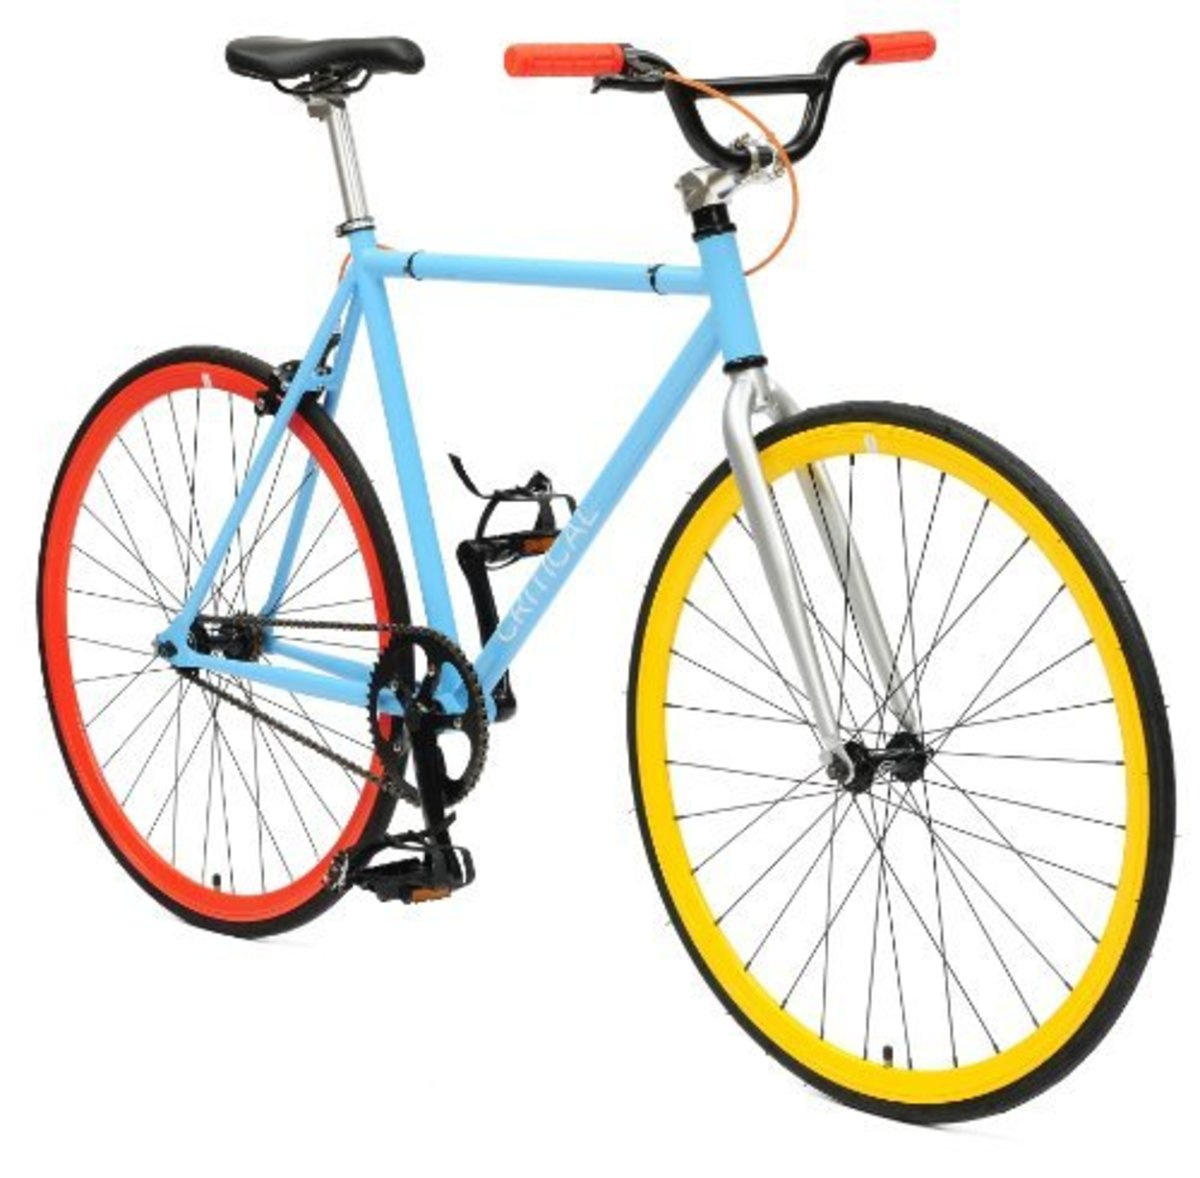 Critical Cycles Fixed-Gear Single Speed Fixie Urban Road Bike -  10 other color combinations to choose from